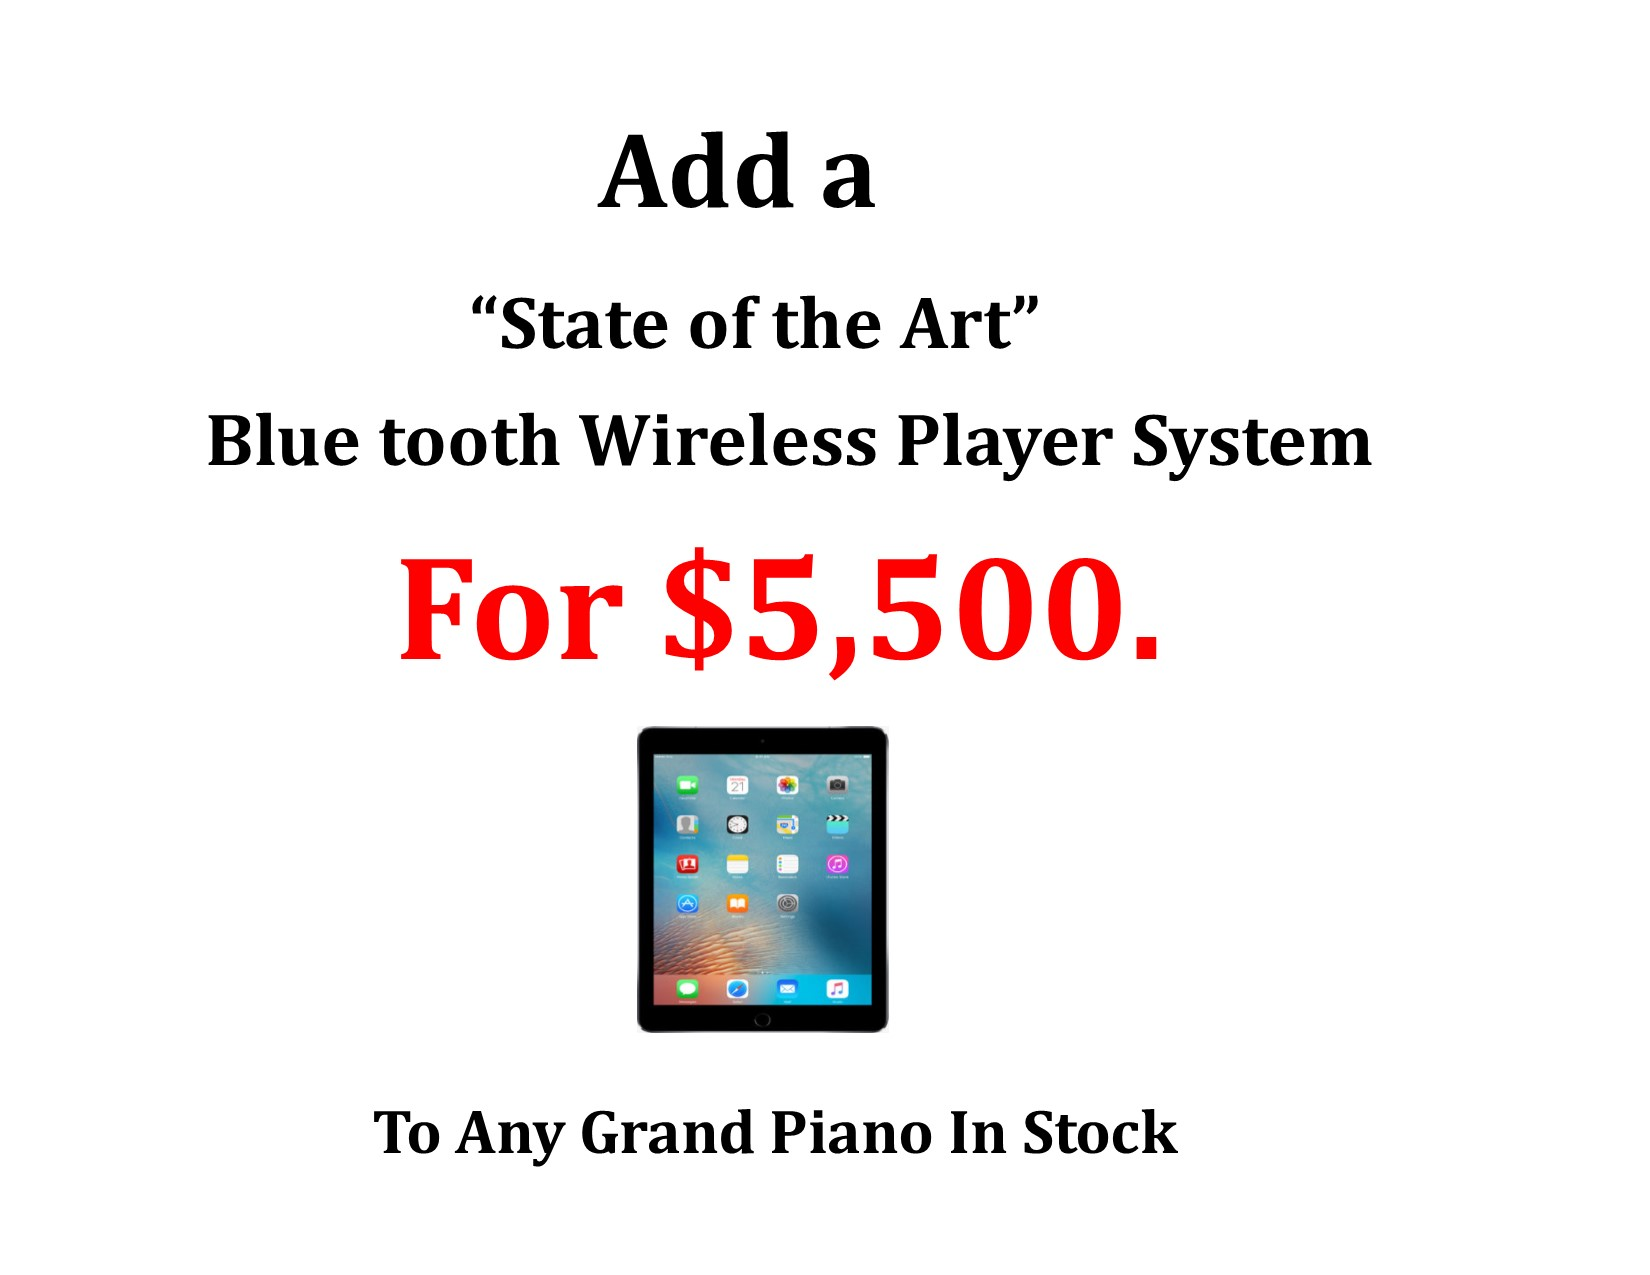 """13786- Add a """"State of the Art"""" Bluetooth Wireless Player for $5,500. To Any Grand Piano In Stock !"""